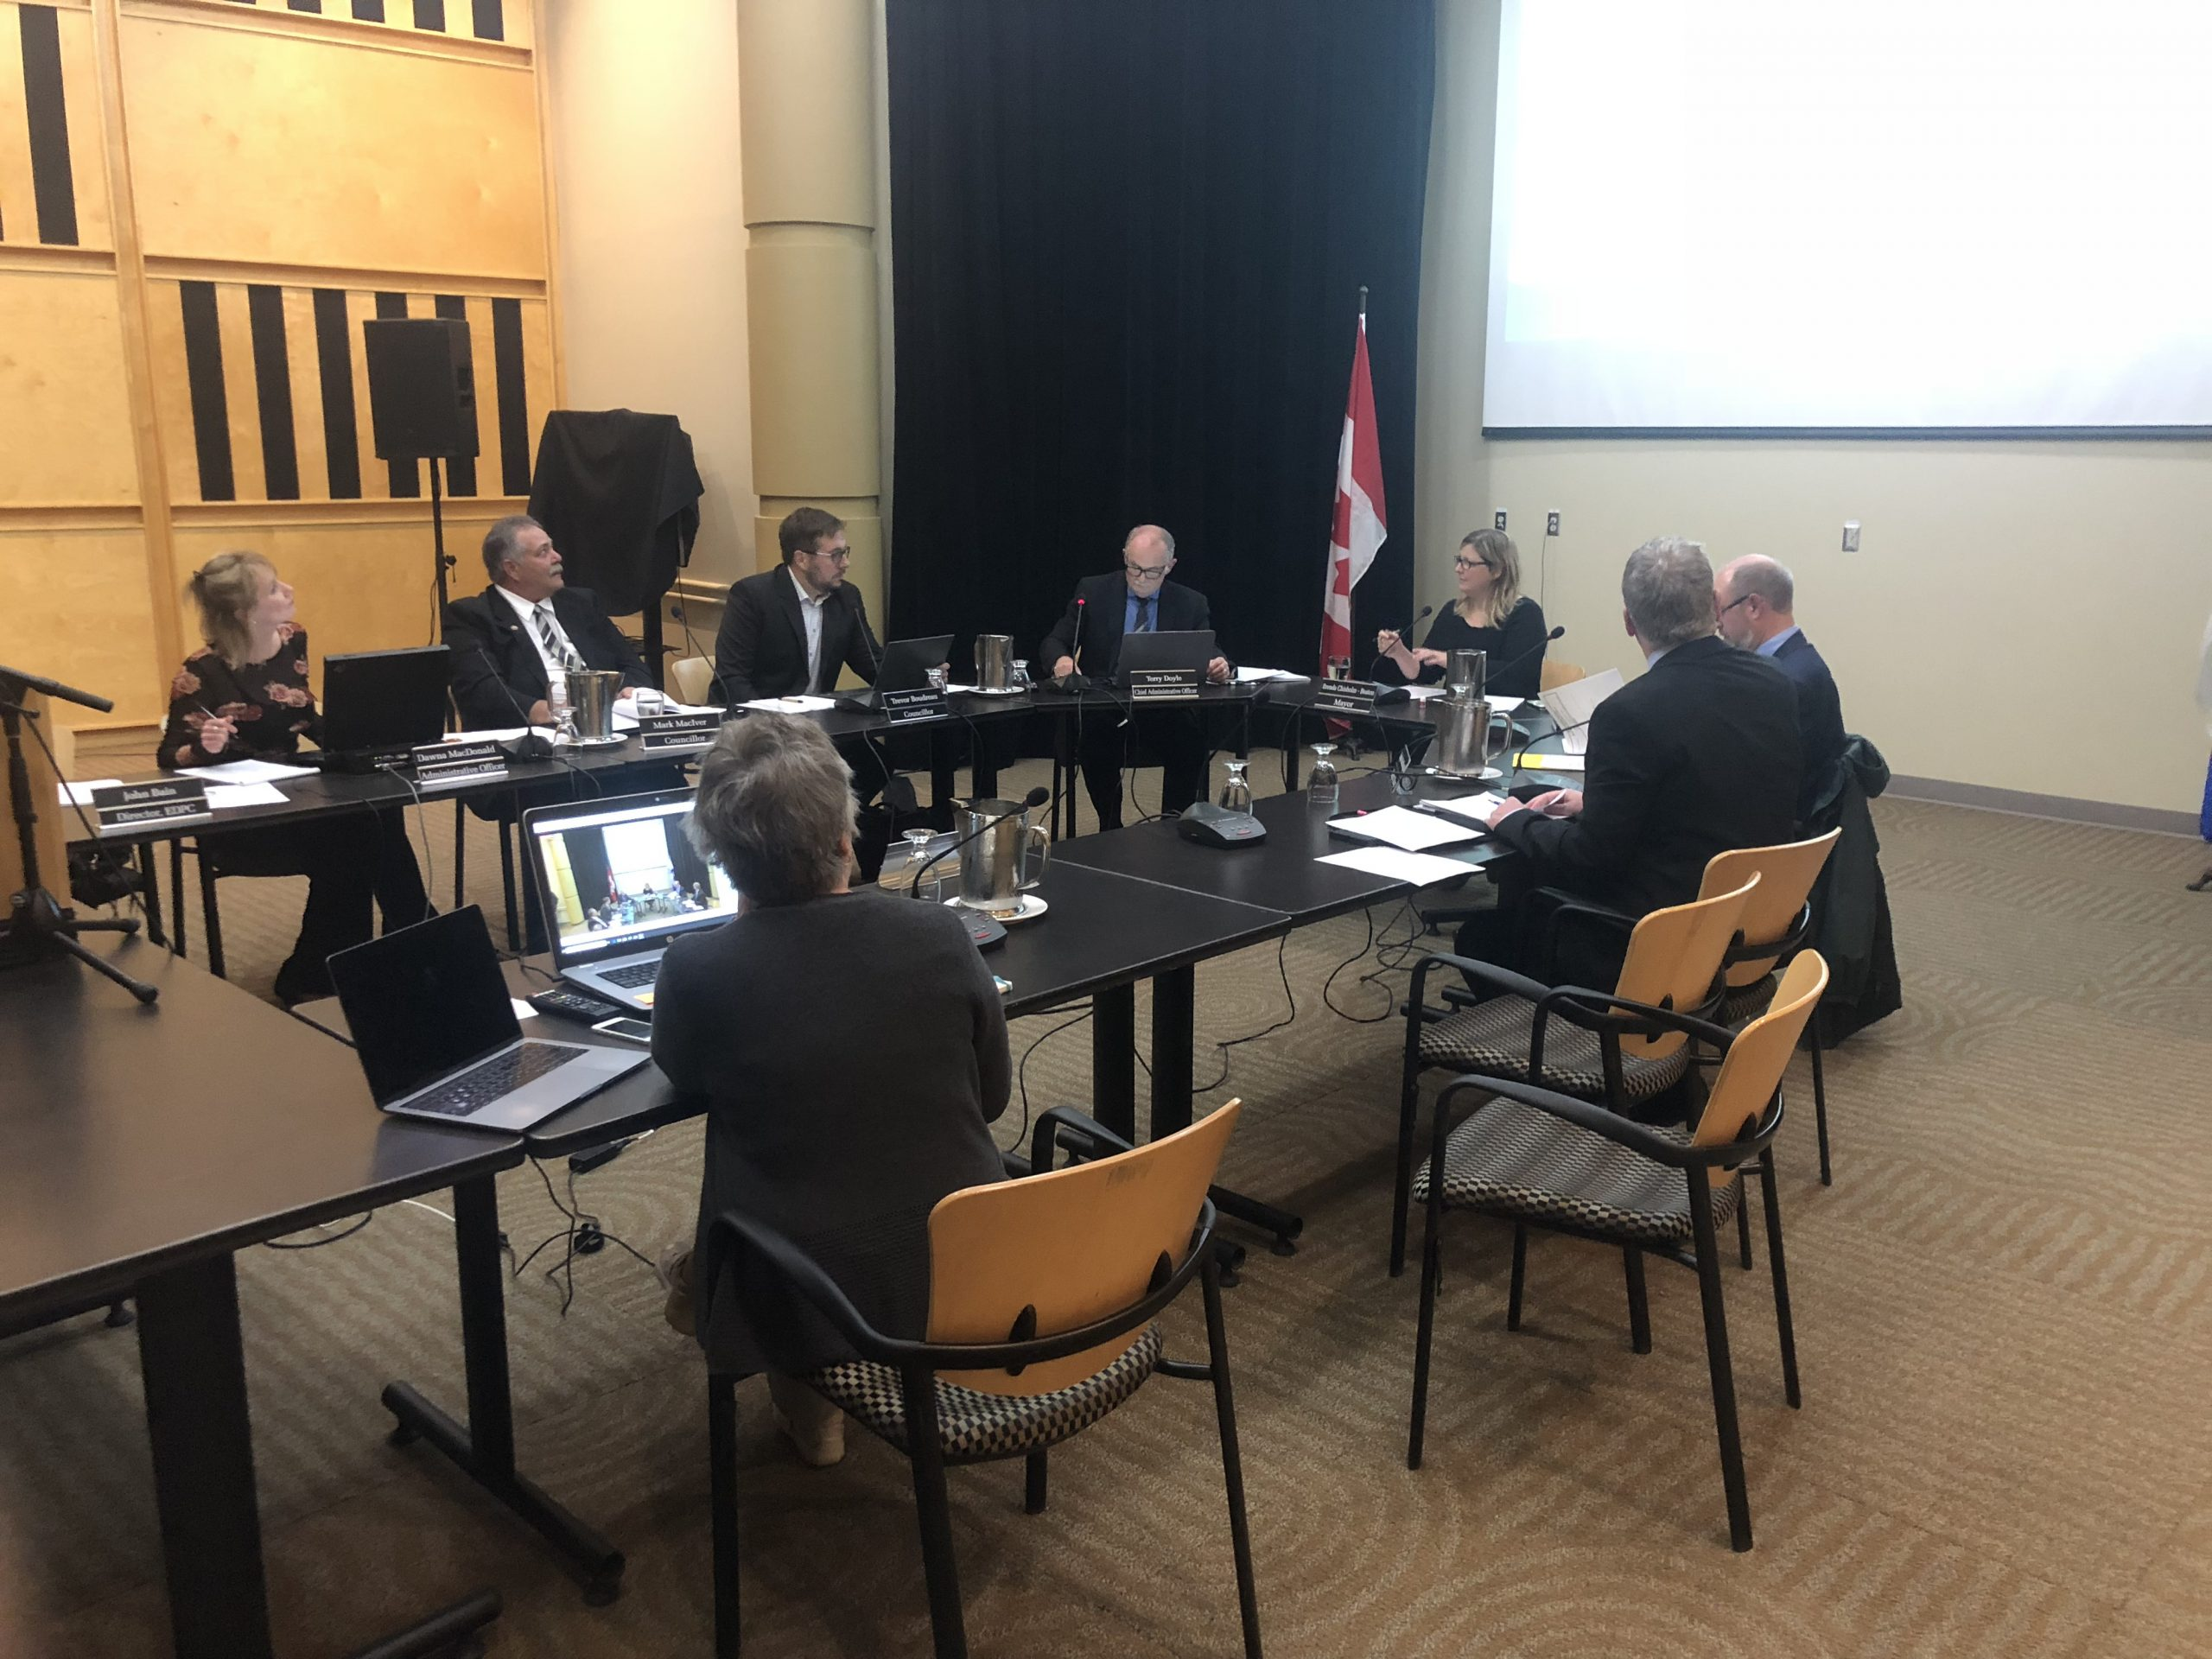 Town officials set tentative date for byelection